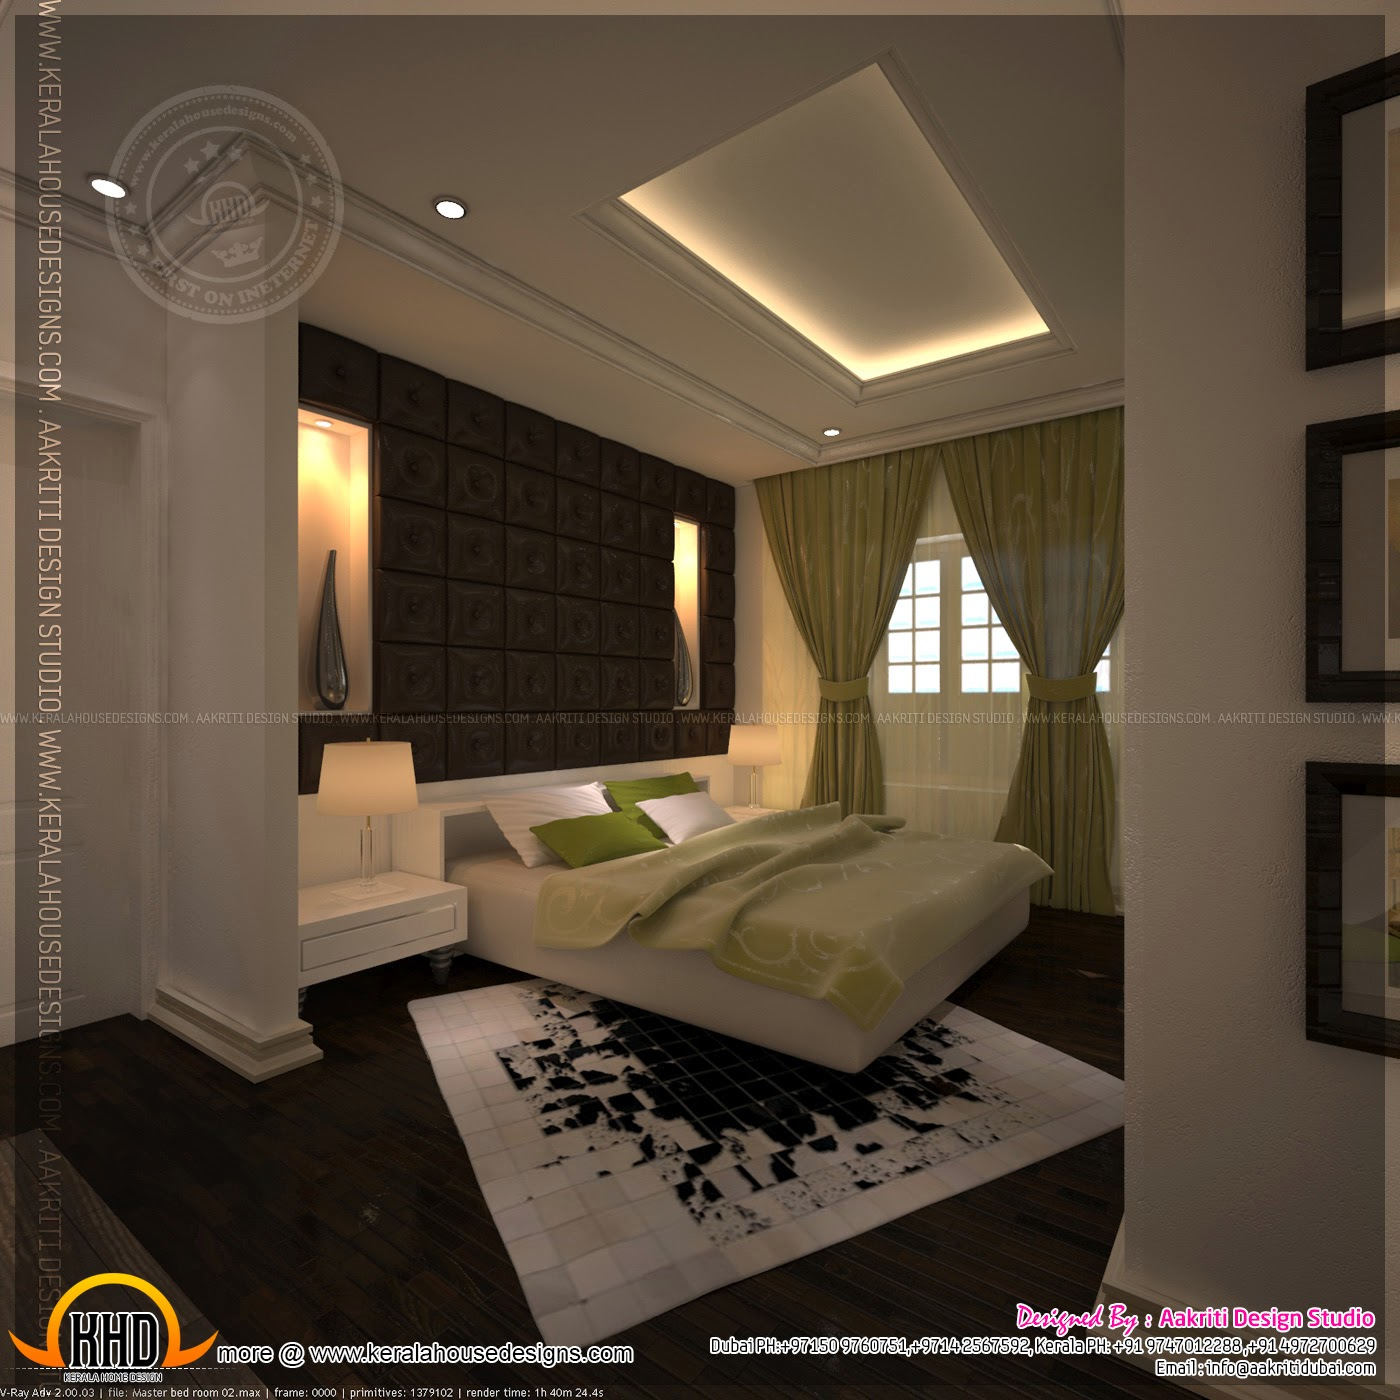 Master bedroom and bathroom interior design kerala home for House interior design photos